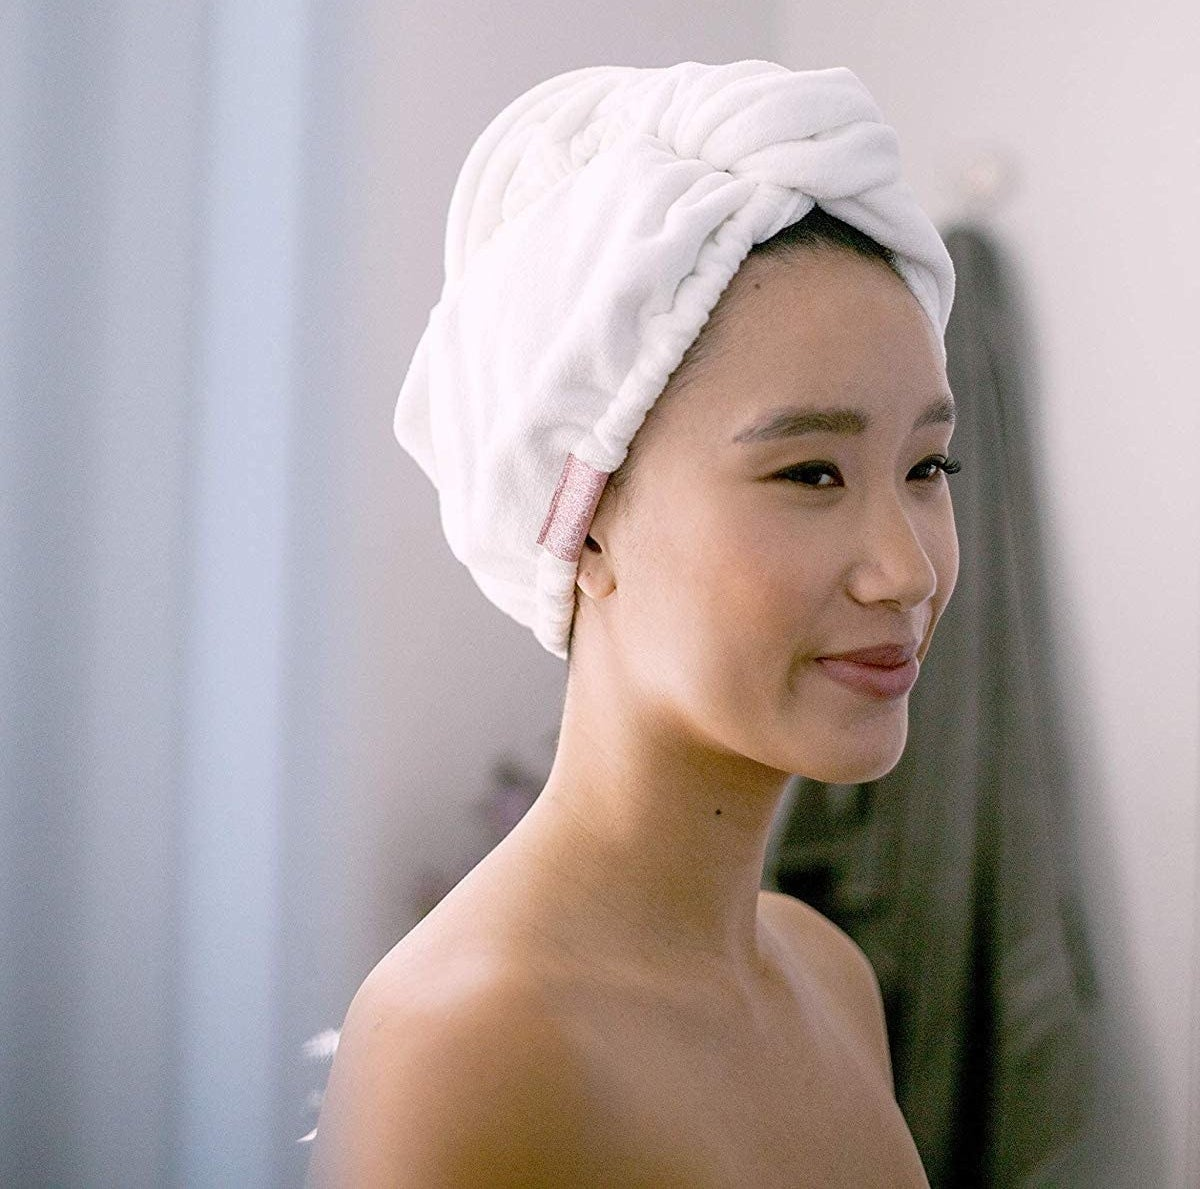 A person wearing a fluffy towel around their head